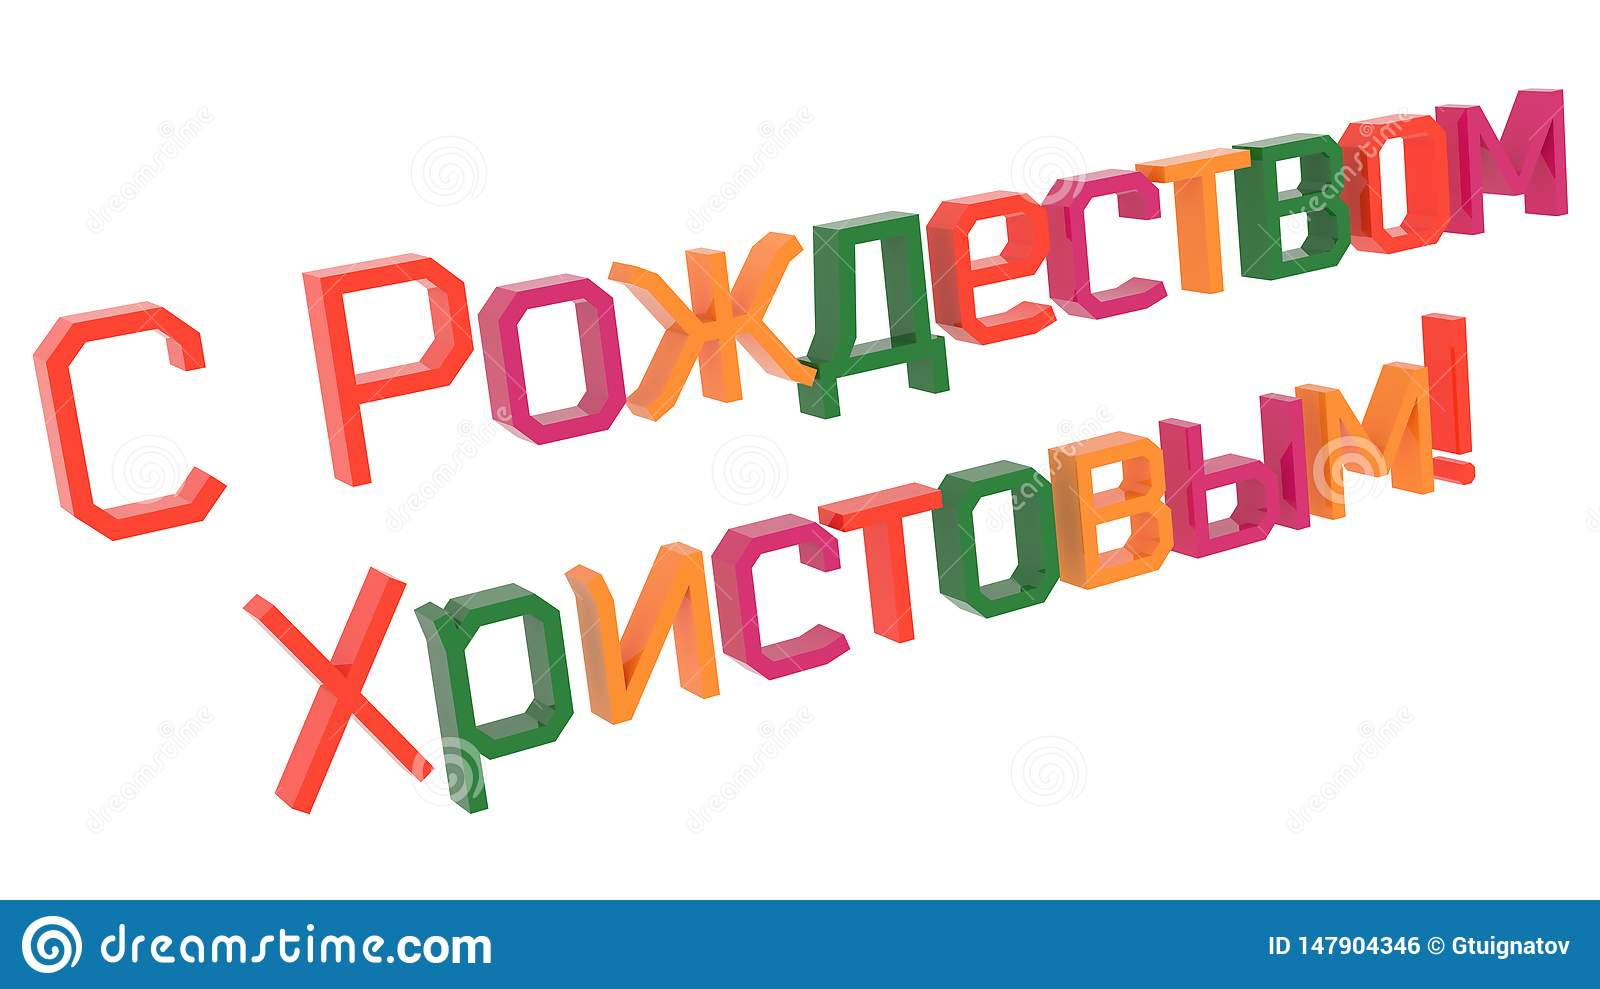 Merry Christmas In Russian Words 3D Rendered Congratulation Text With Square, Old Style Font Illustration Colored